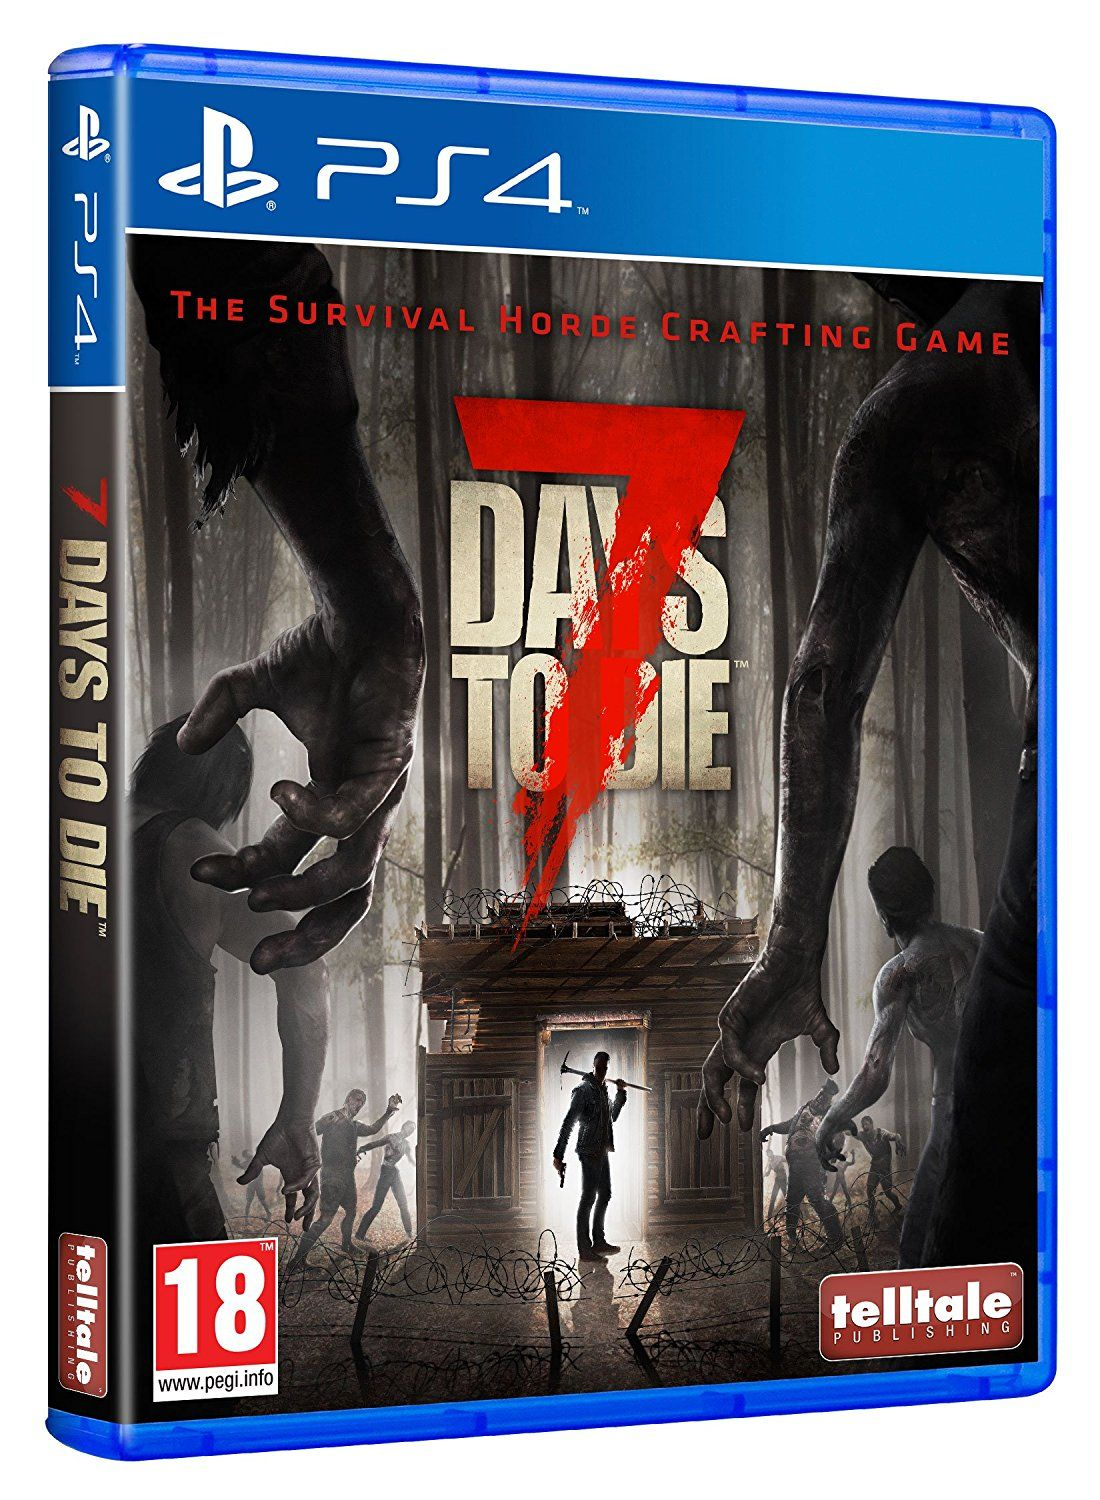 7 Days To Die Ps4 7 Days To Die Ps4 Games Video Games Ps4